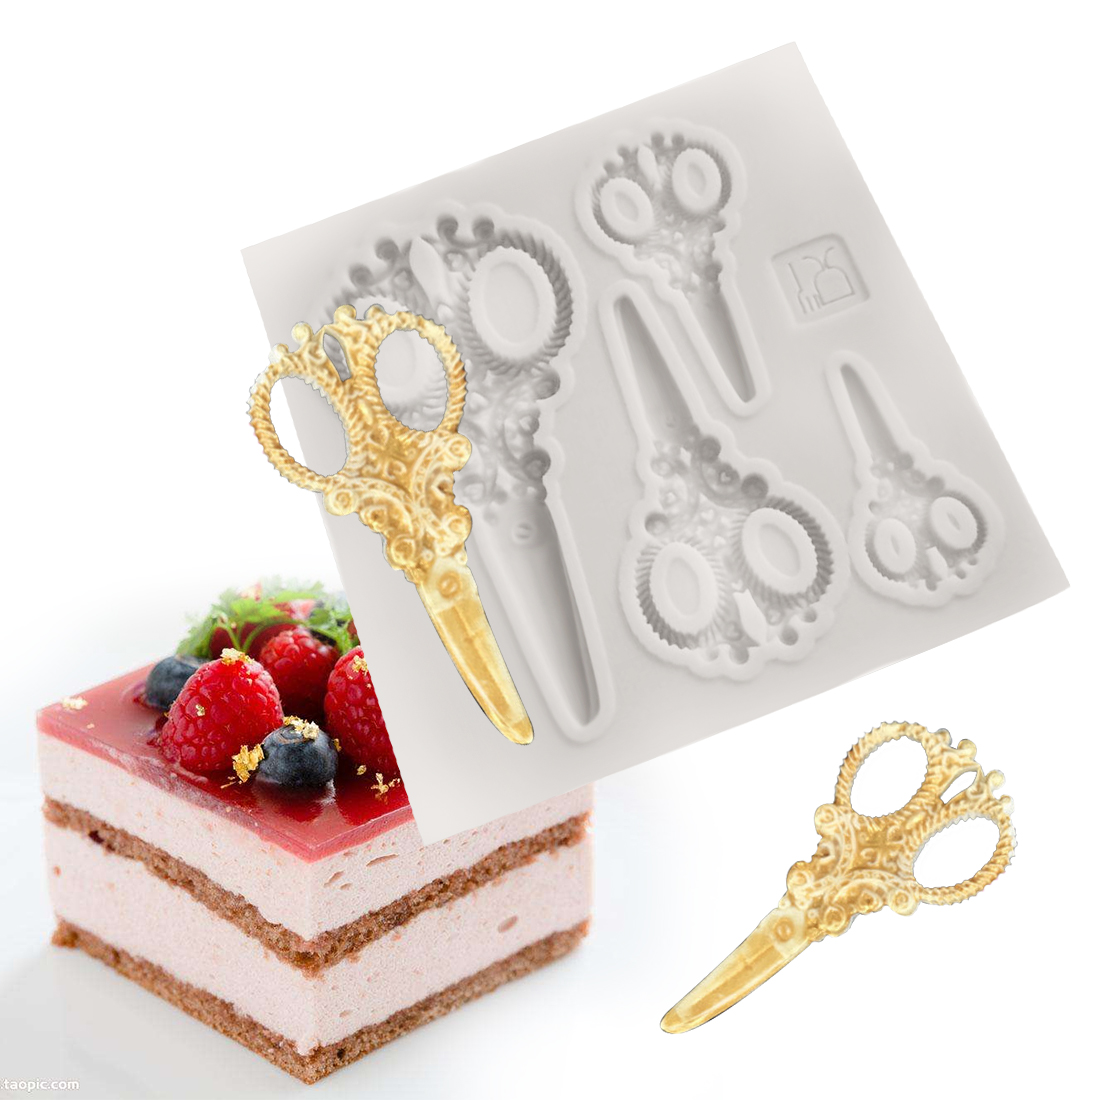 3d Retro Scissors Cake Silicone Baking Molds Fondant Cake Decorating Tools Candy Fimo Clay Mold Chocolate Gumpaste Moulds Xl351 Pottery & Ceramics